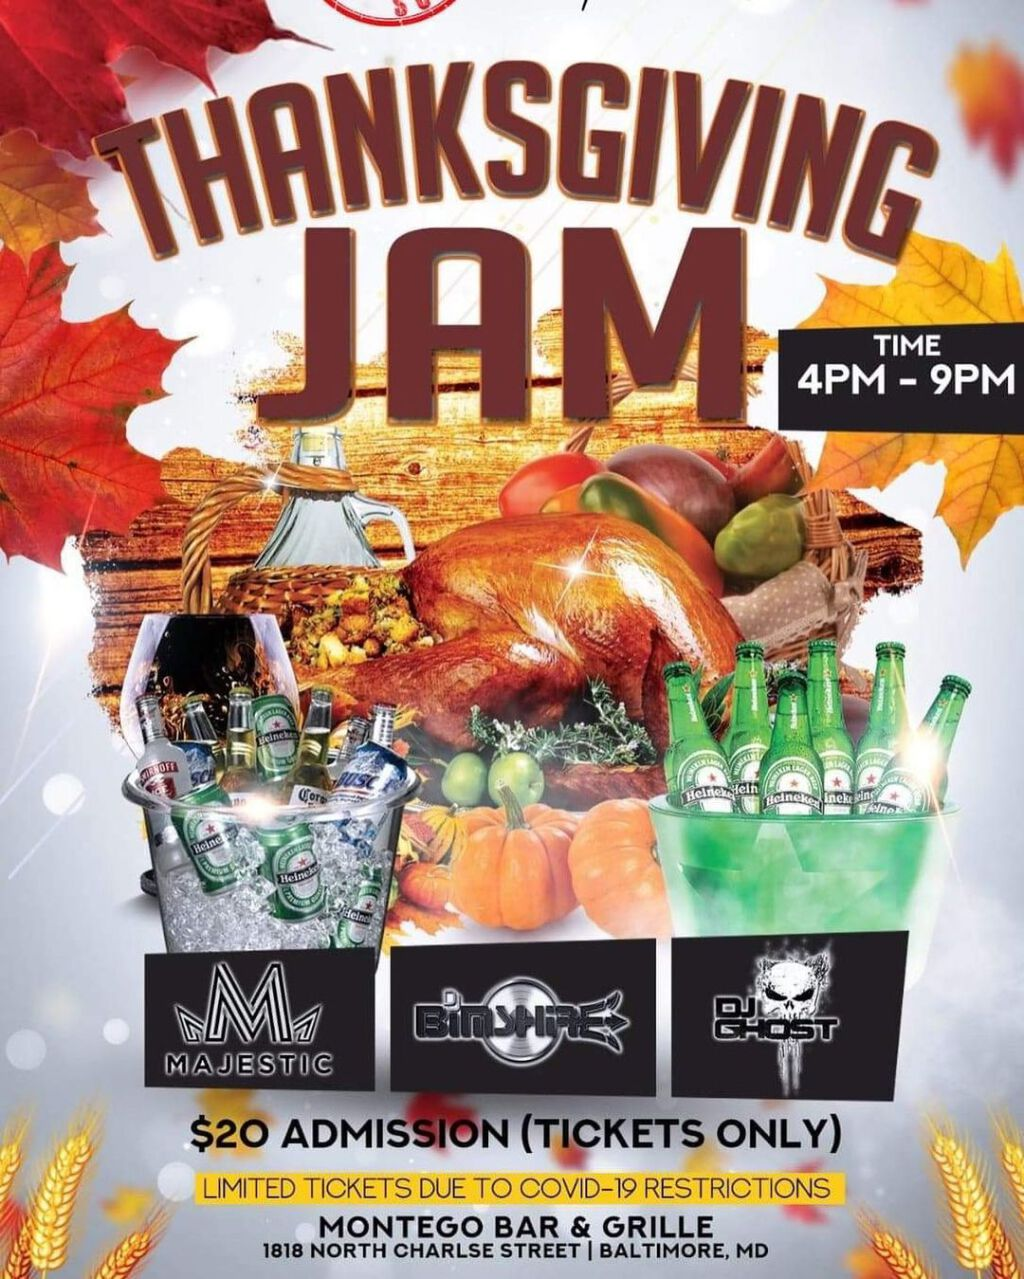 Thanksgiving Jam flyer or graphic.